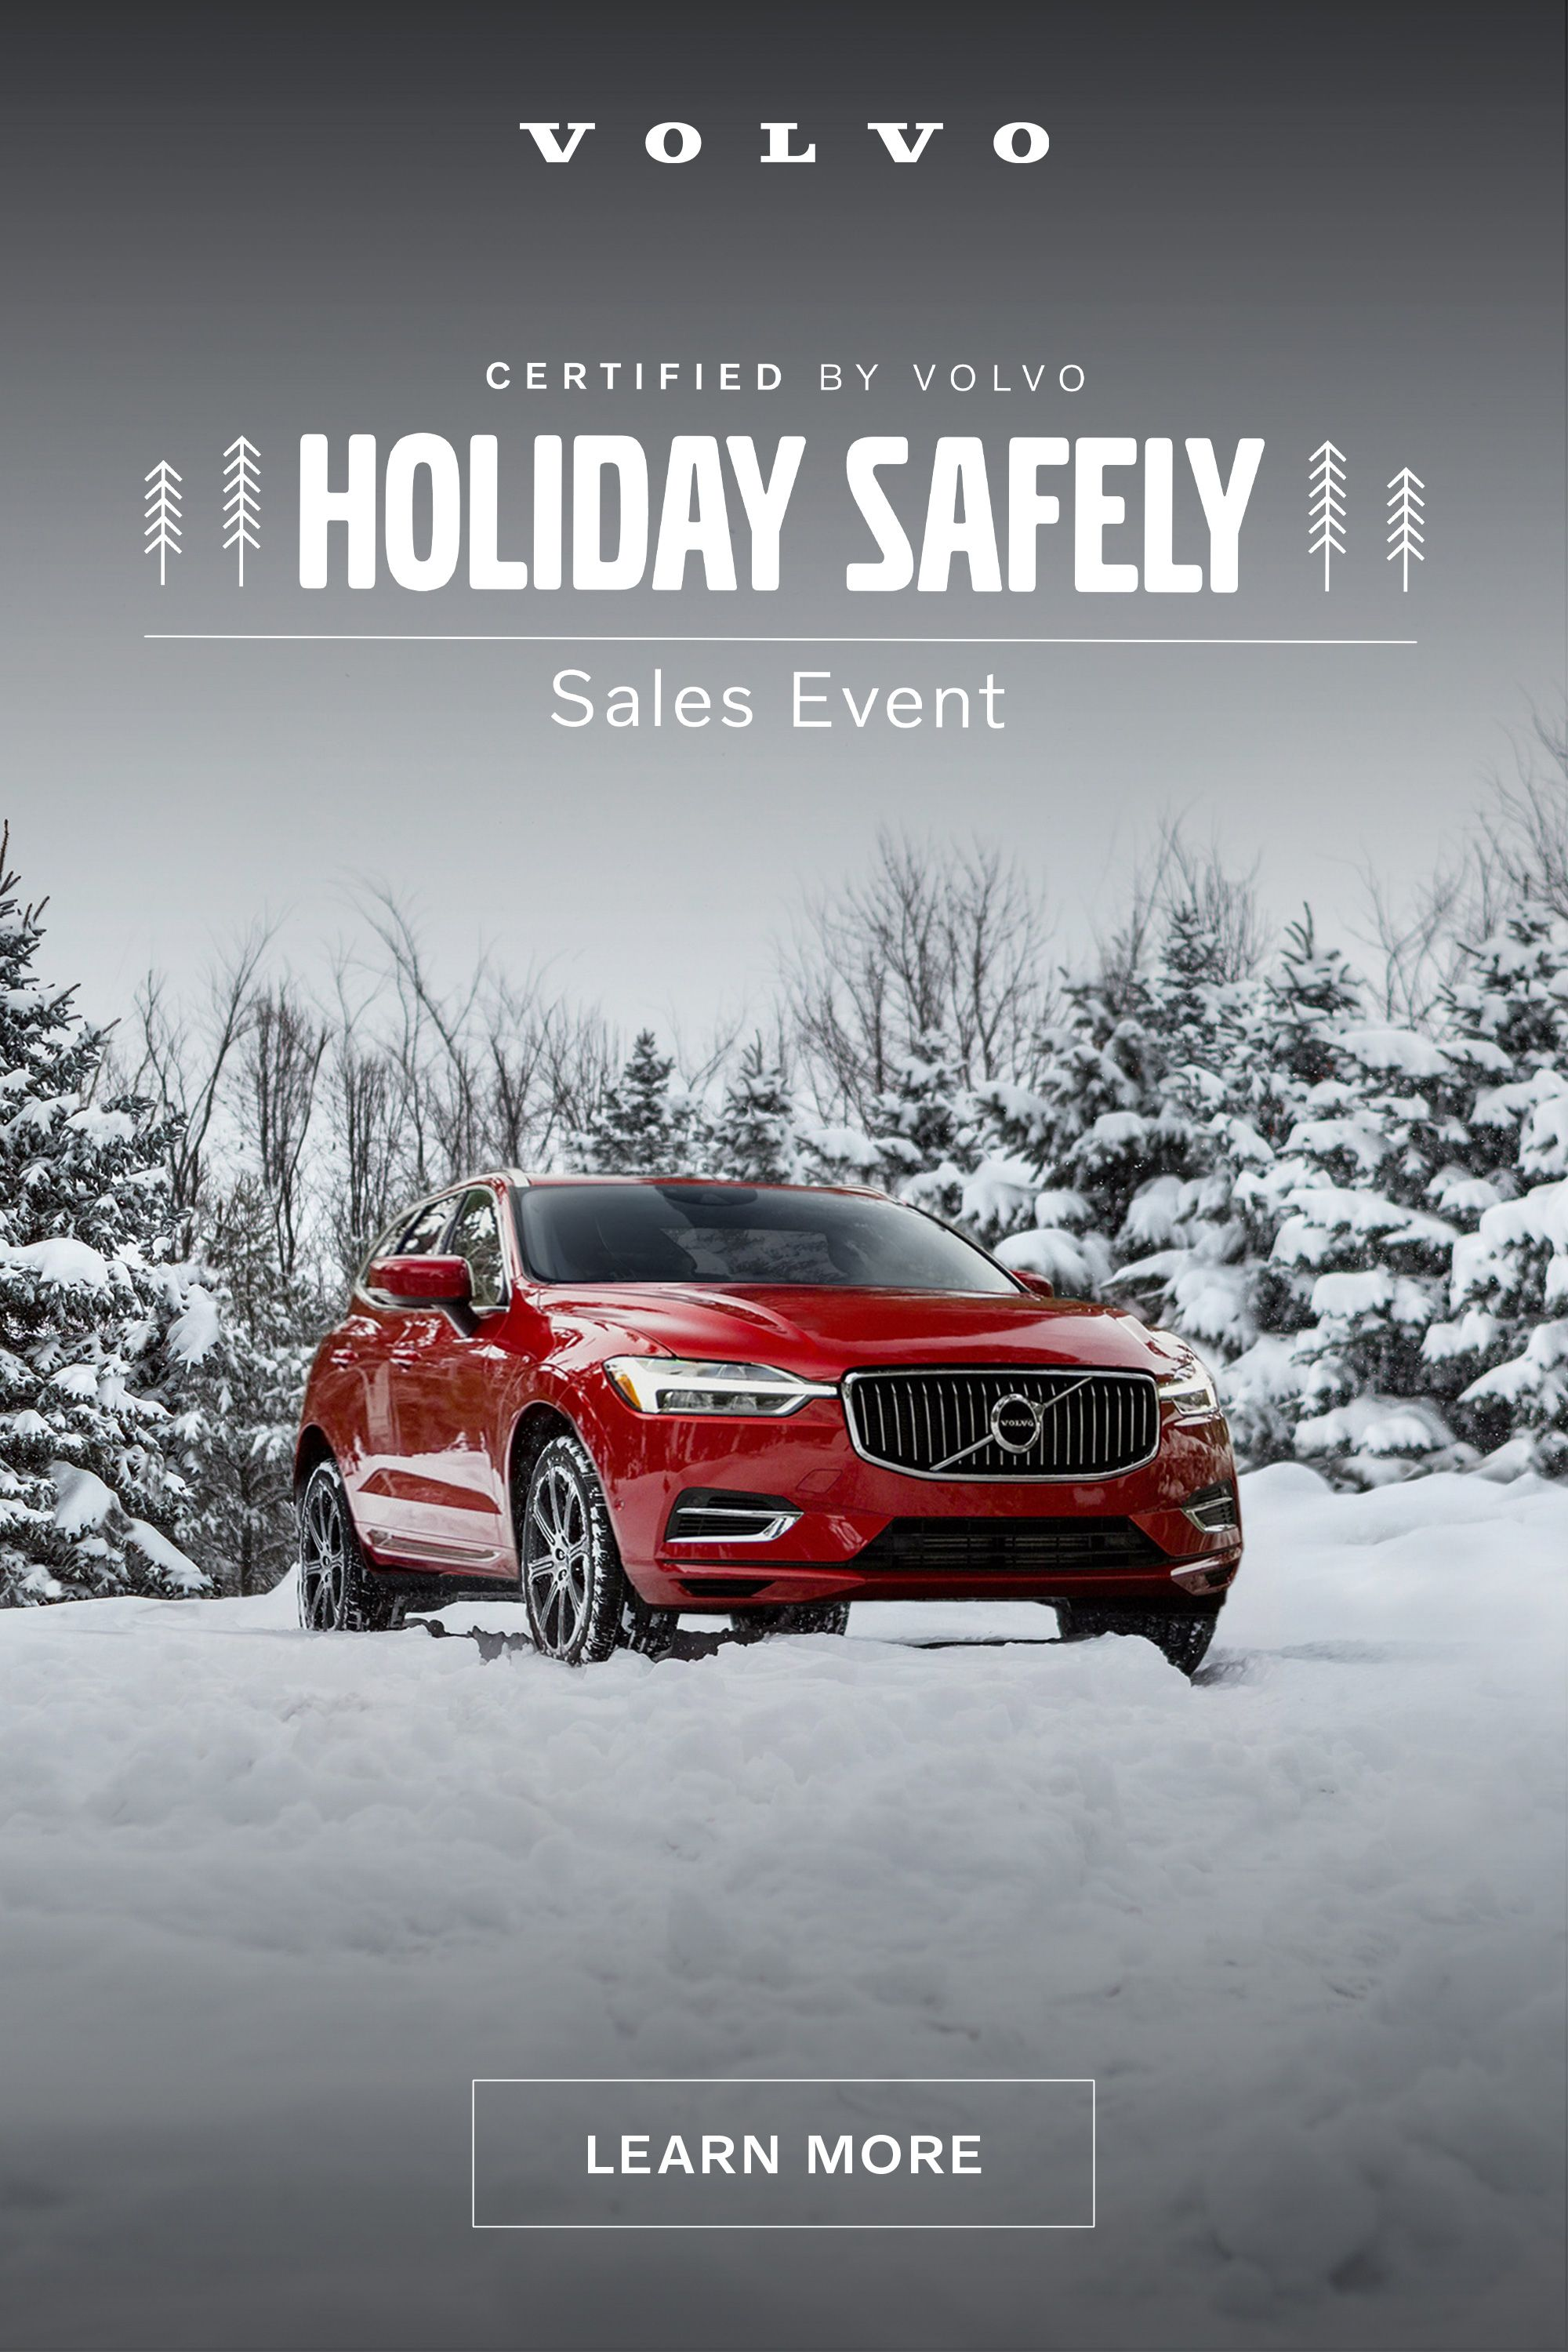 Holiday Safely Sales Event Diesel Trucks Ford Dream Cars Volvo Xc60